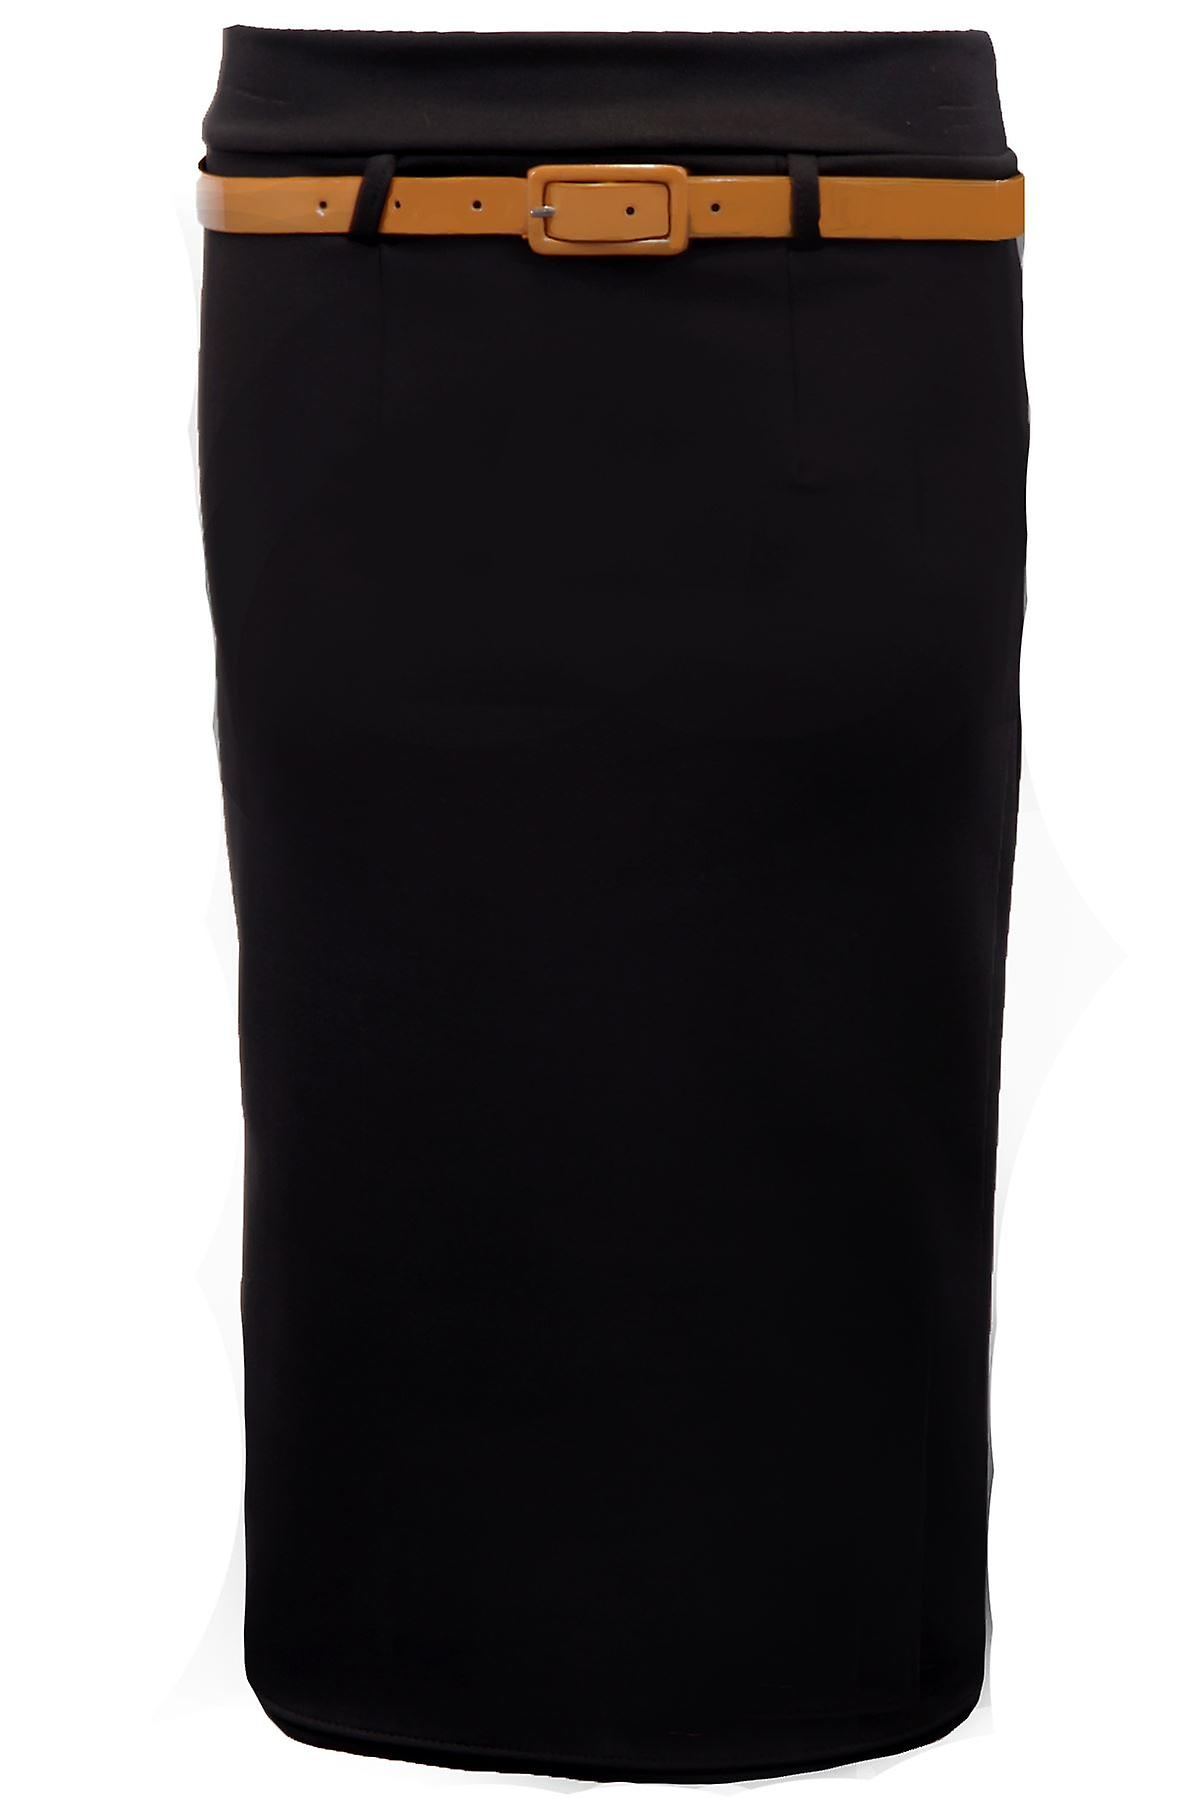 New Ladies Belted Black Mocha Stone Bodycon Womens Belted Pencil Skirt